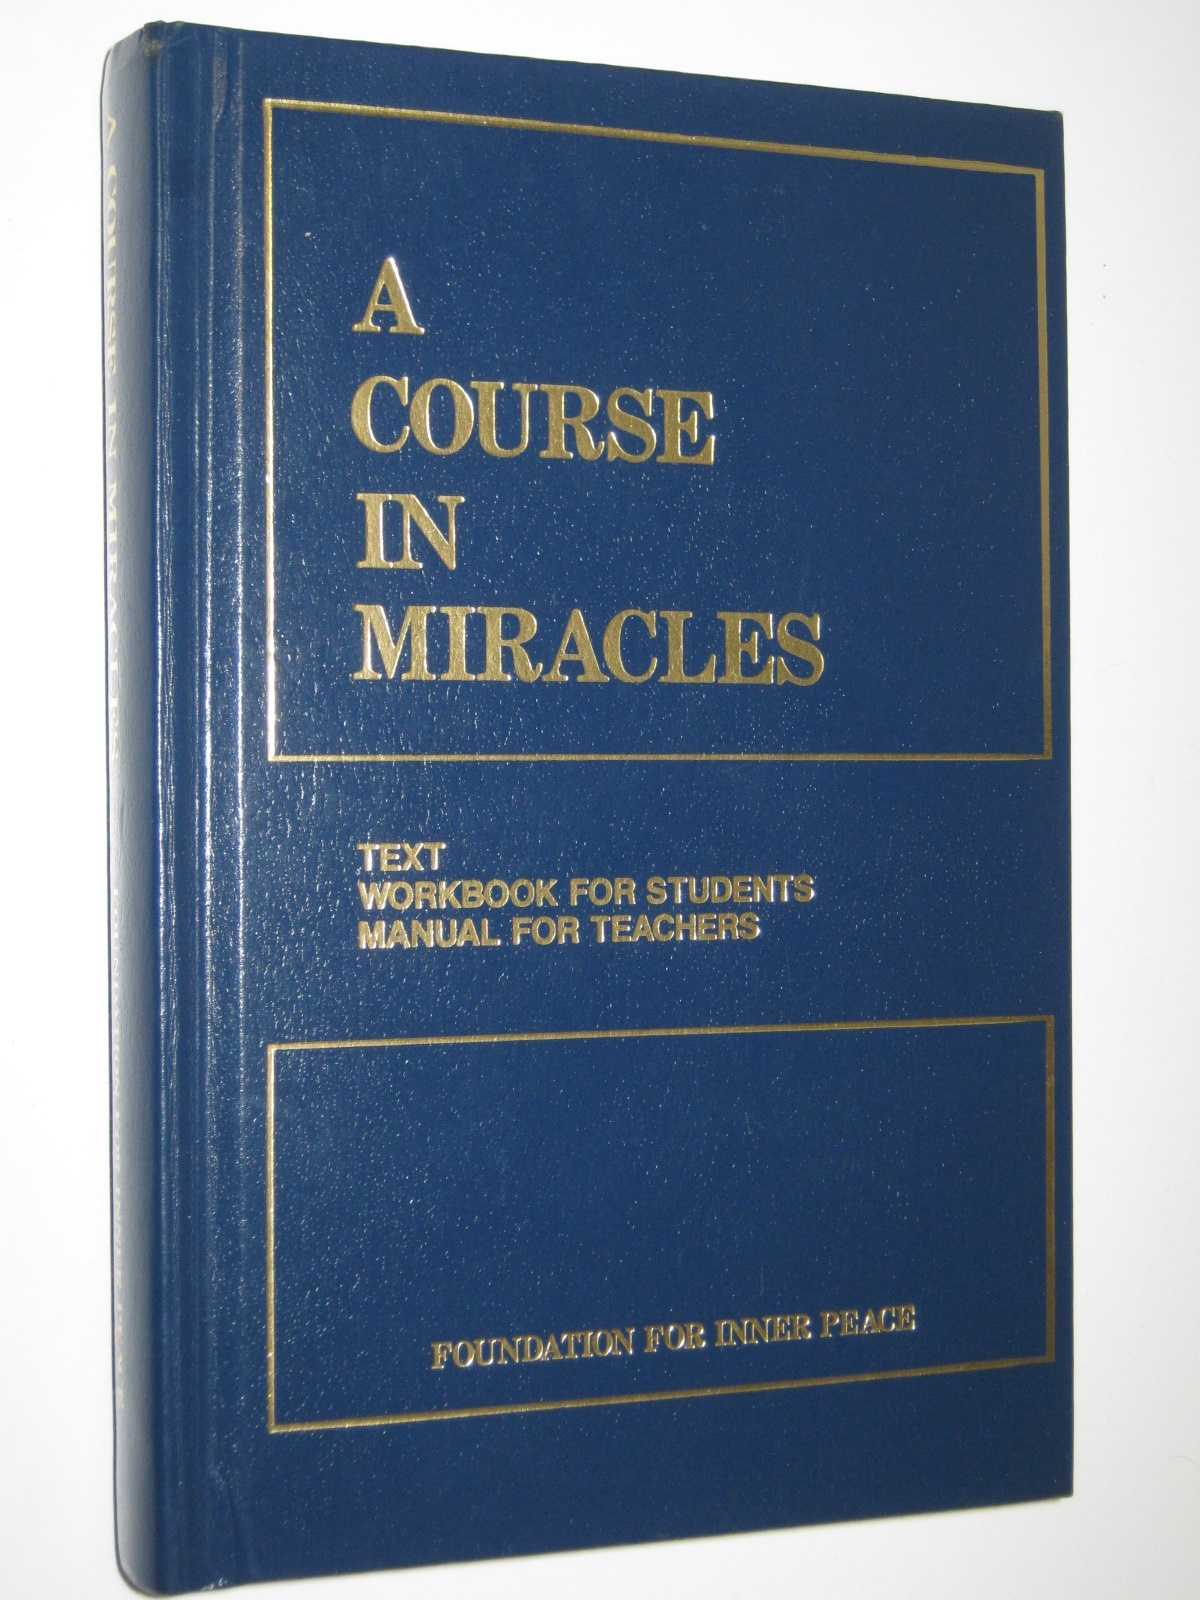 A Course in Miracles: Combined Edition : Text + Workbook for Students + Manual for Teachers, Foundation for Inner Peace